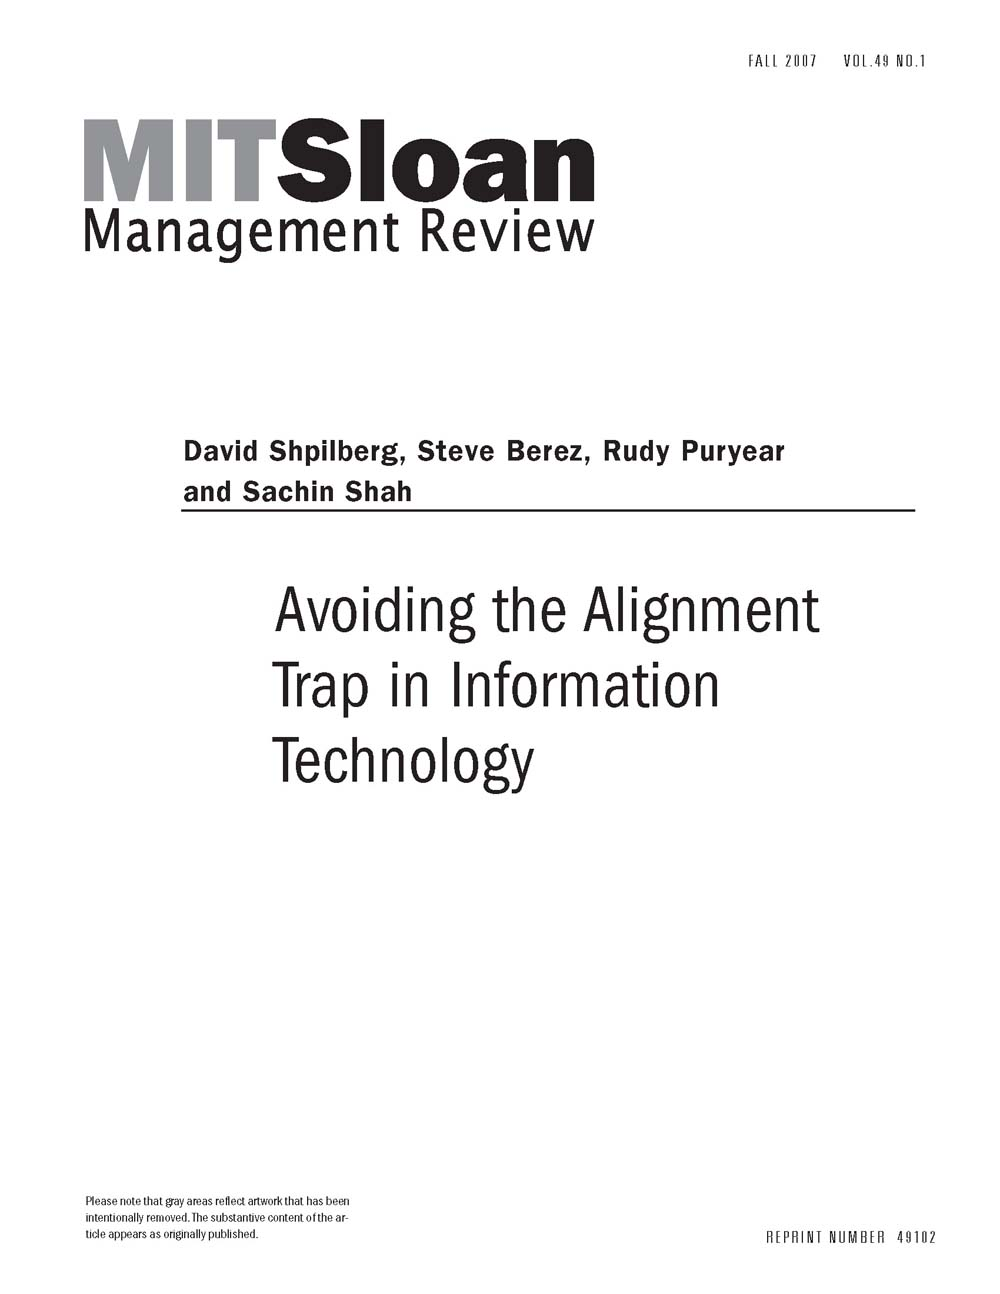 avoiding alignment trap essay Strategic it alignment: twenty-five years on  the strategic alignment model ( sam) of henderson and venkatraman  summary and path forward   avoiding the alignment trap in information technology, mit sloan.